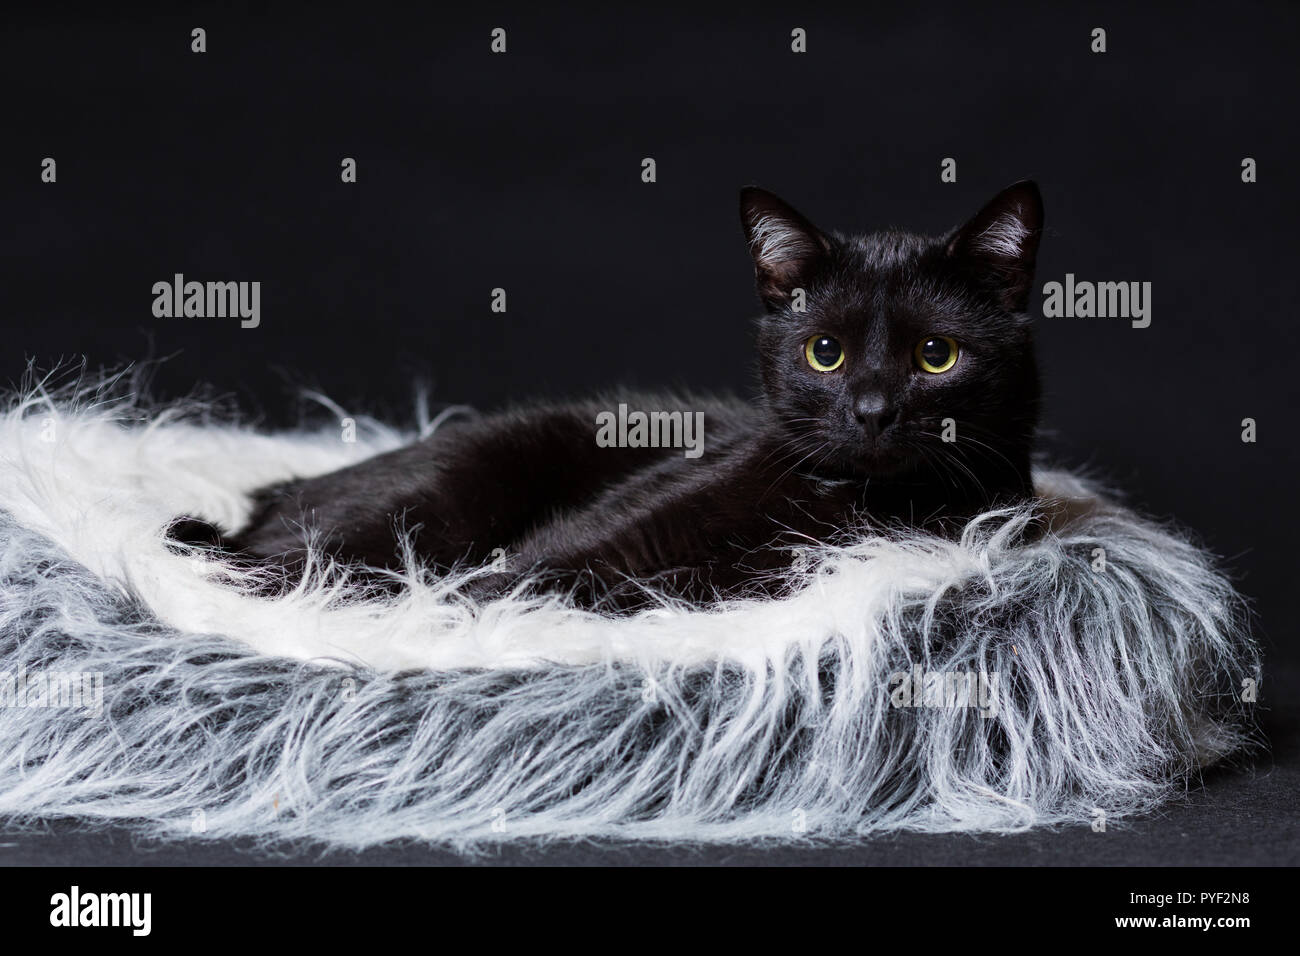 cat of black color lies on its stove on a black background - Stock Image